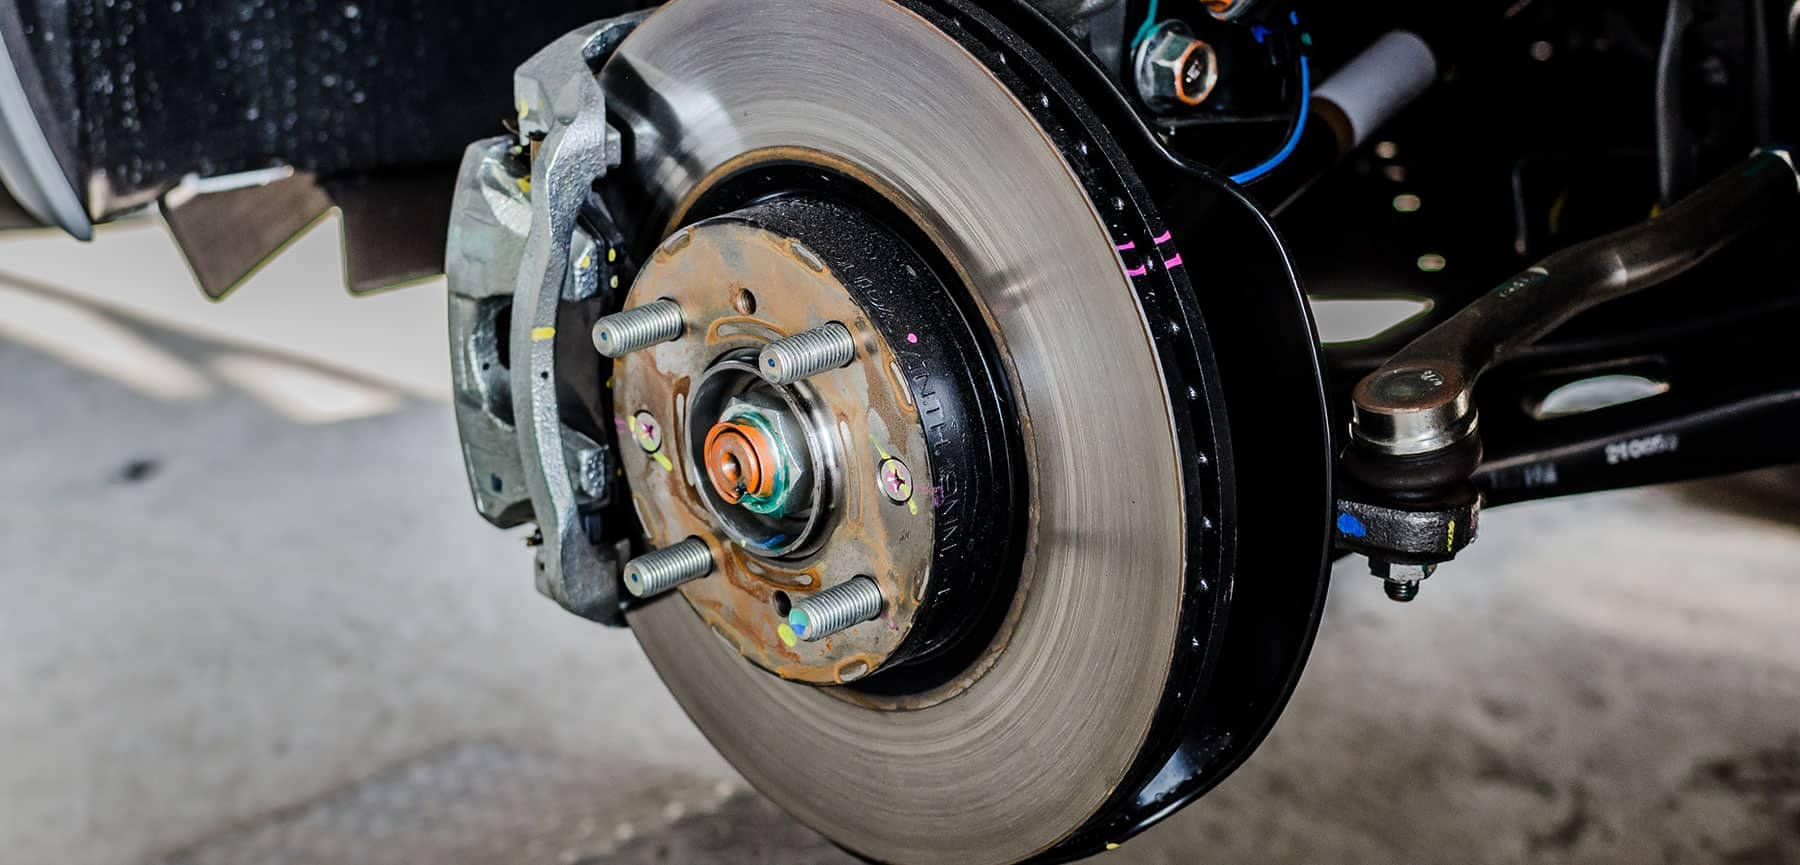 Close up image of front brake rotors on a vehicle